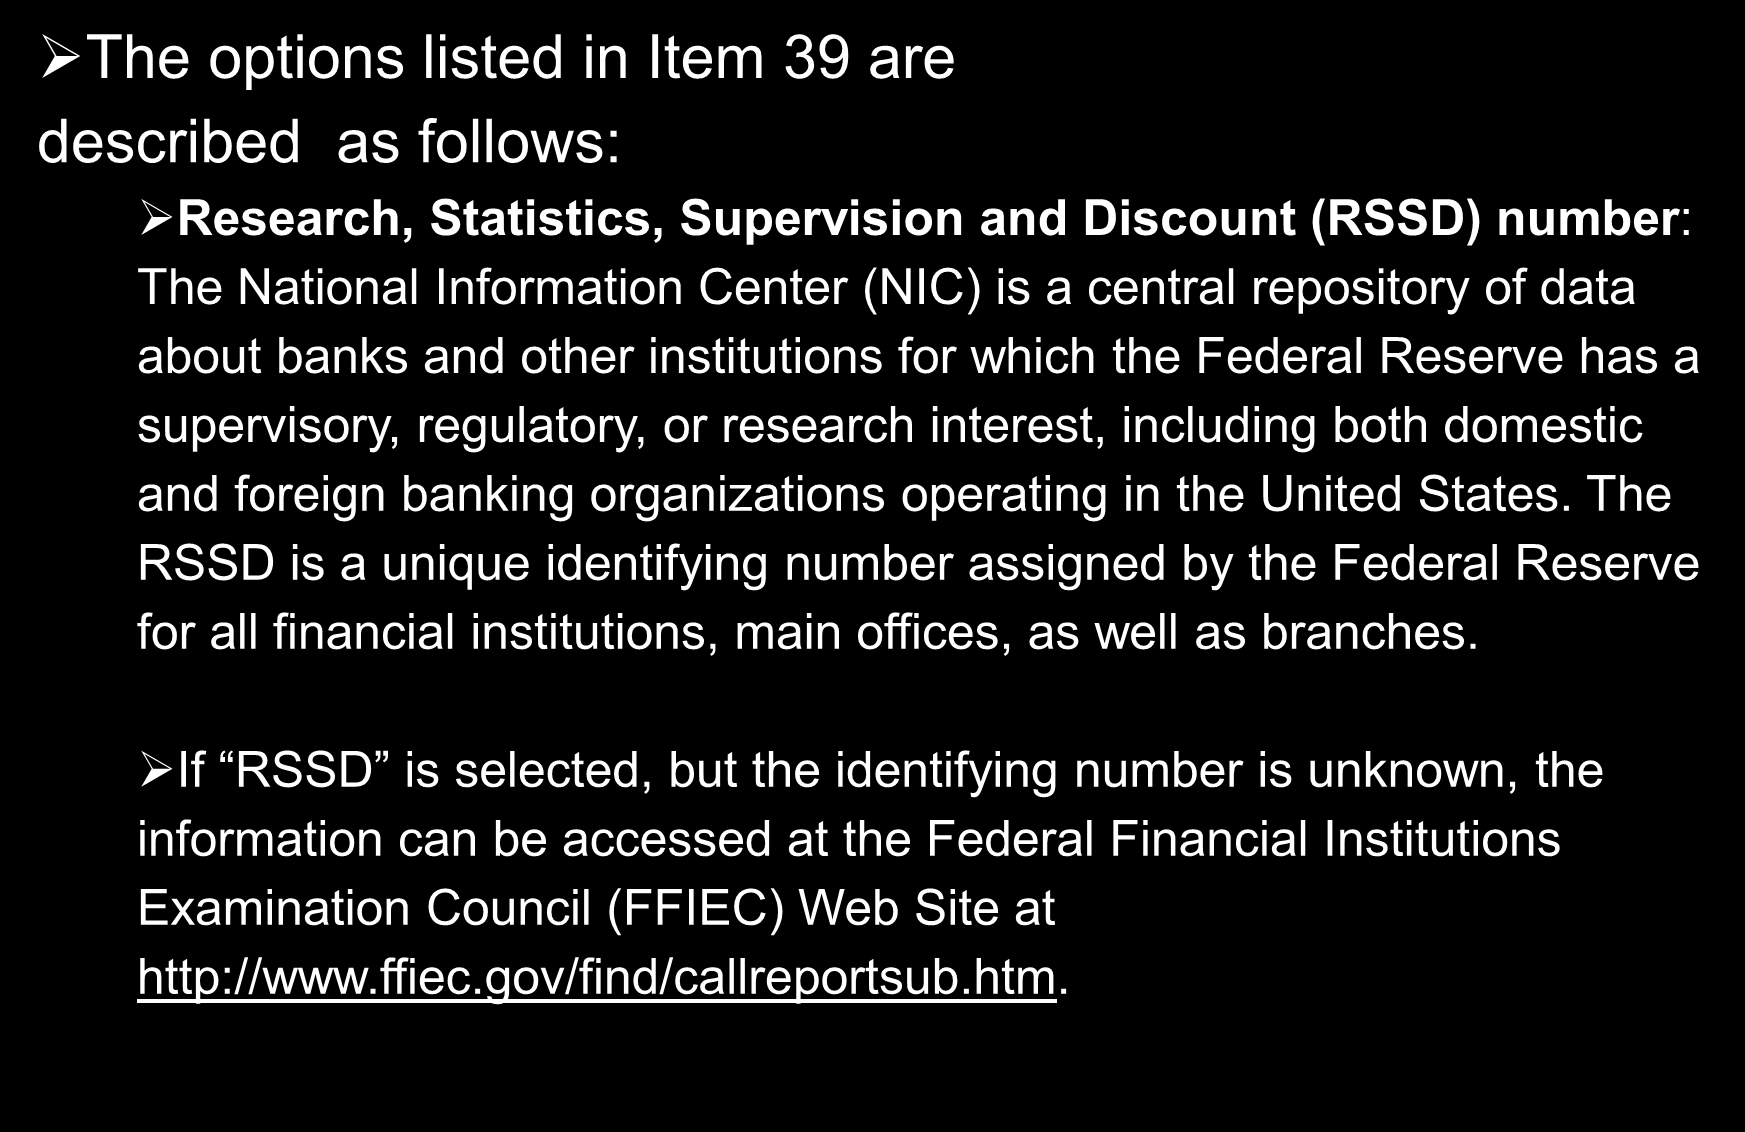 Financial Institution Identification The options listed in Item 39 are described as follows: Research, Statistics, Supervision and Discount (RSSD) number: The National Information Center (NIC) is a